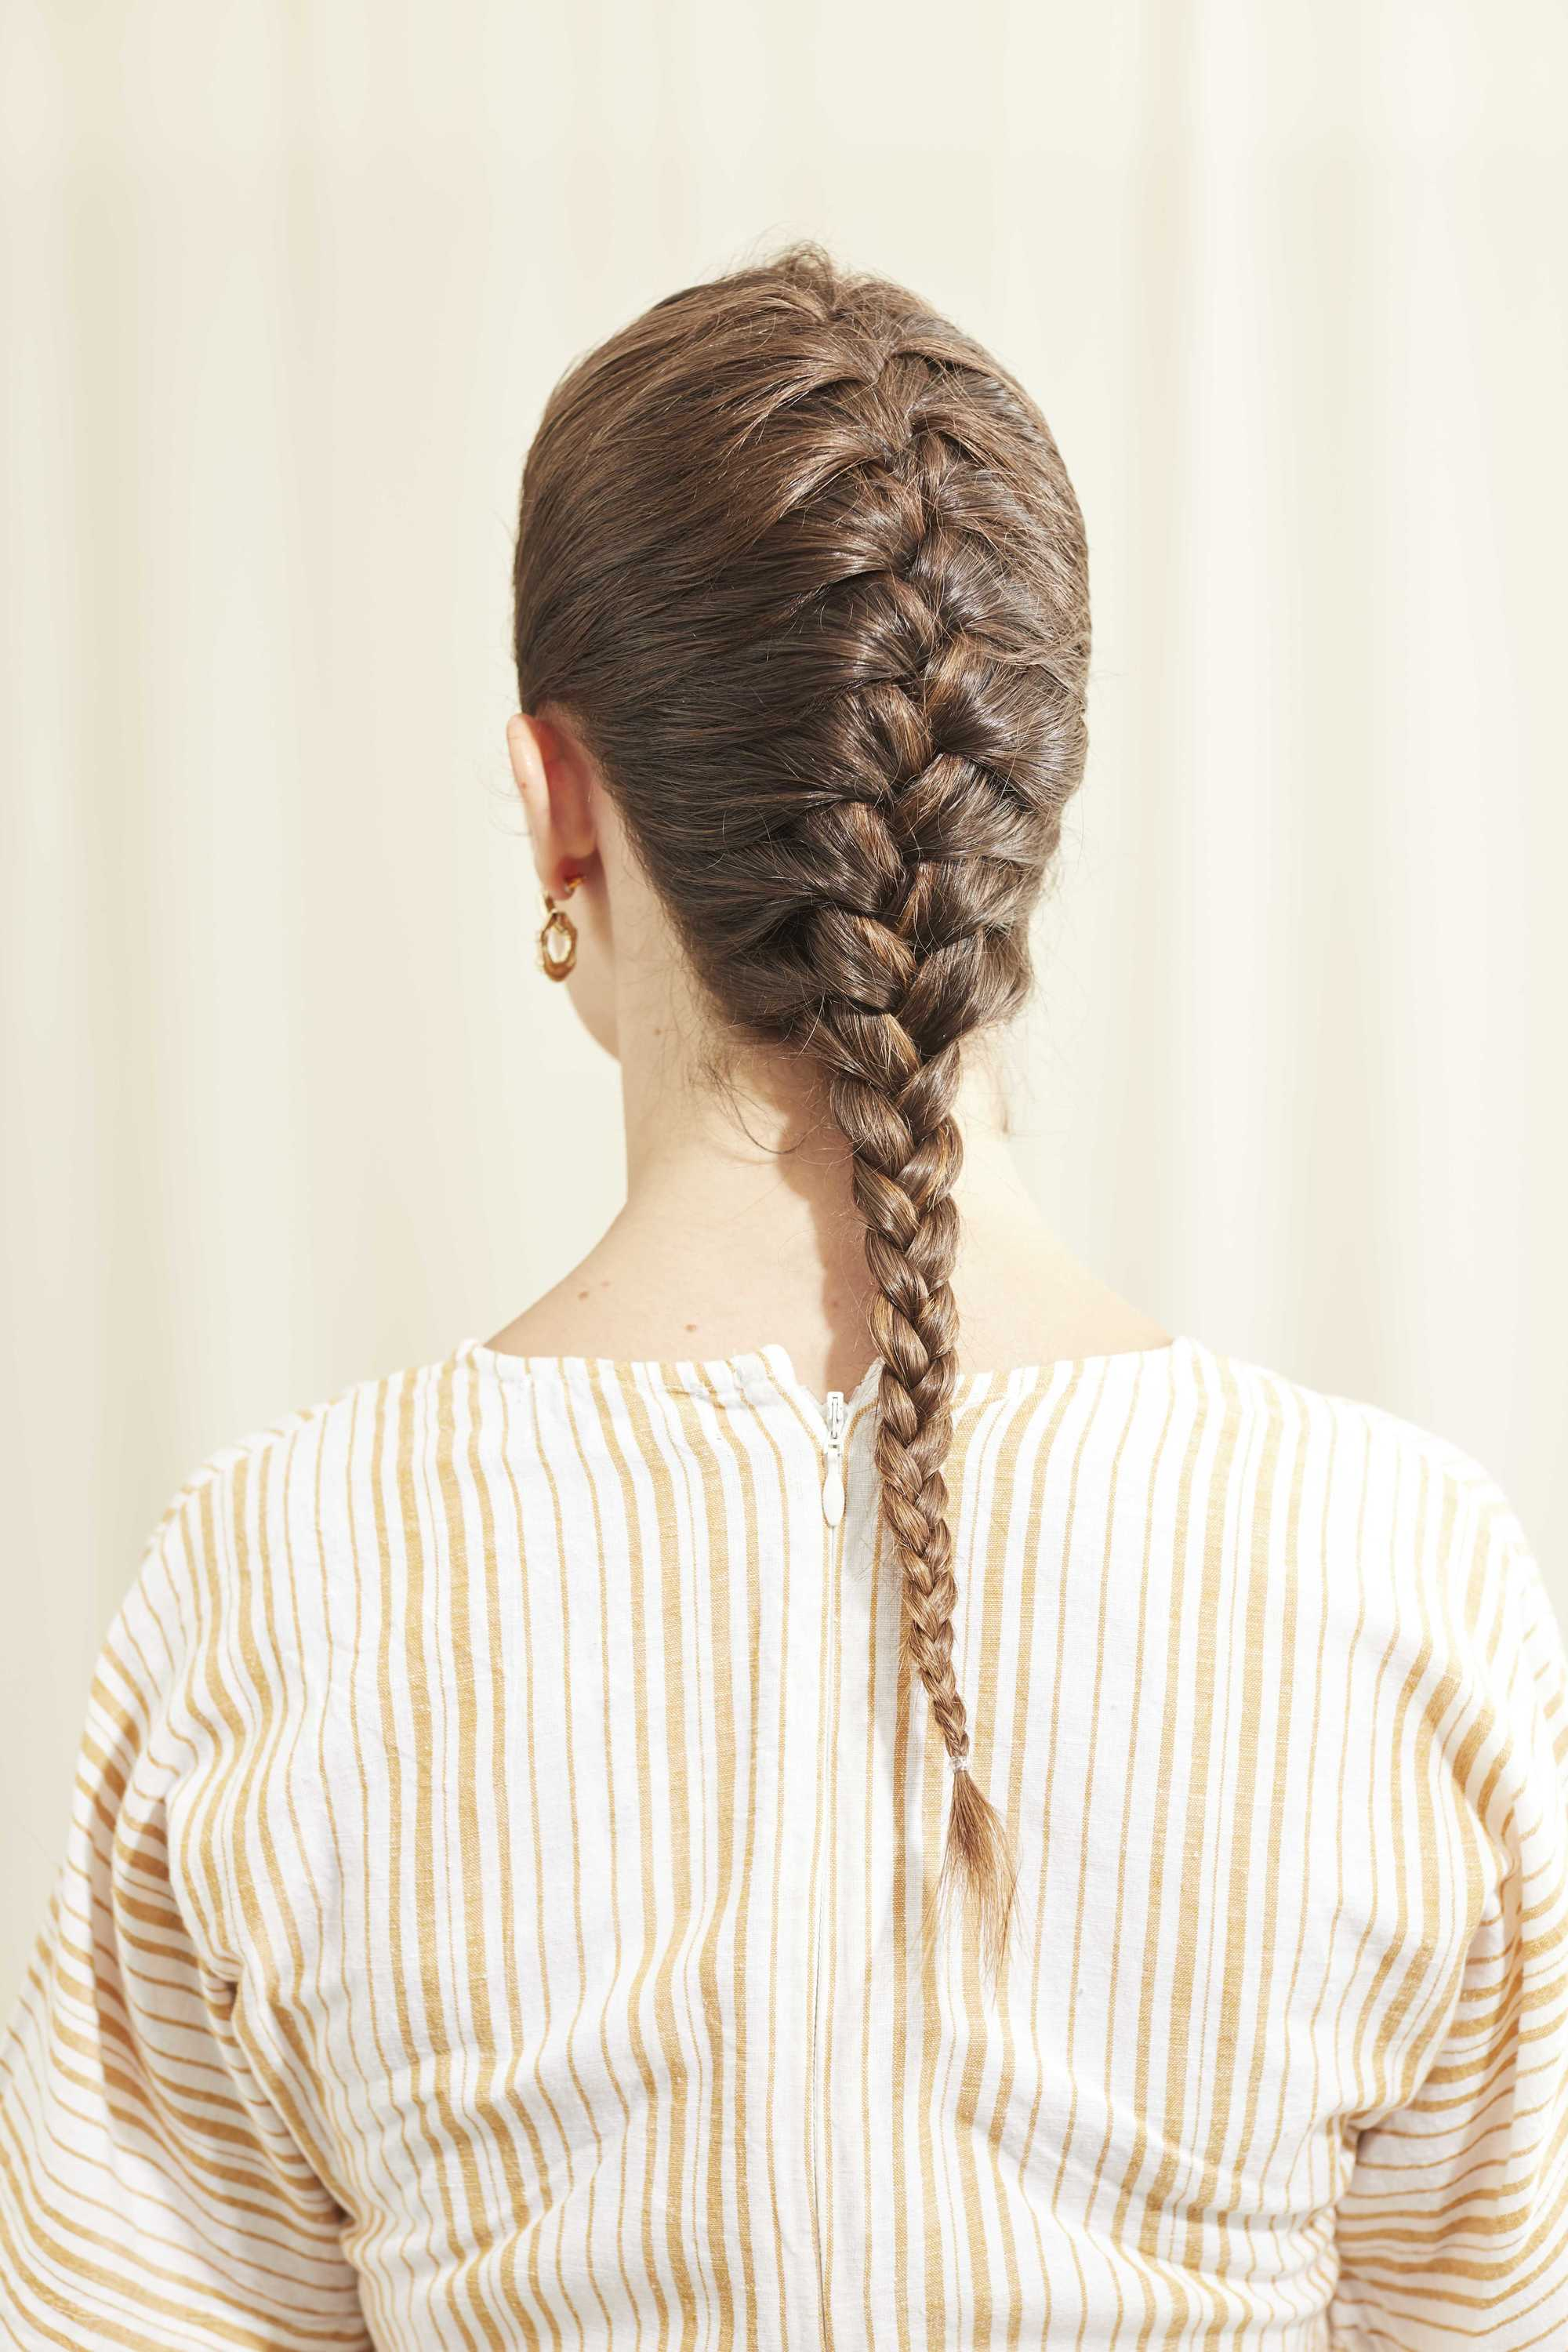 Woman with long brunette hair in a French braid